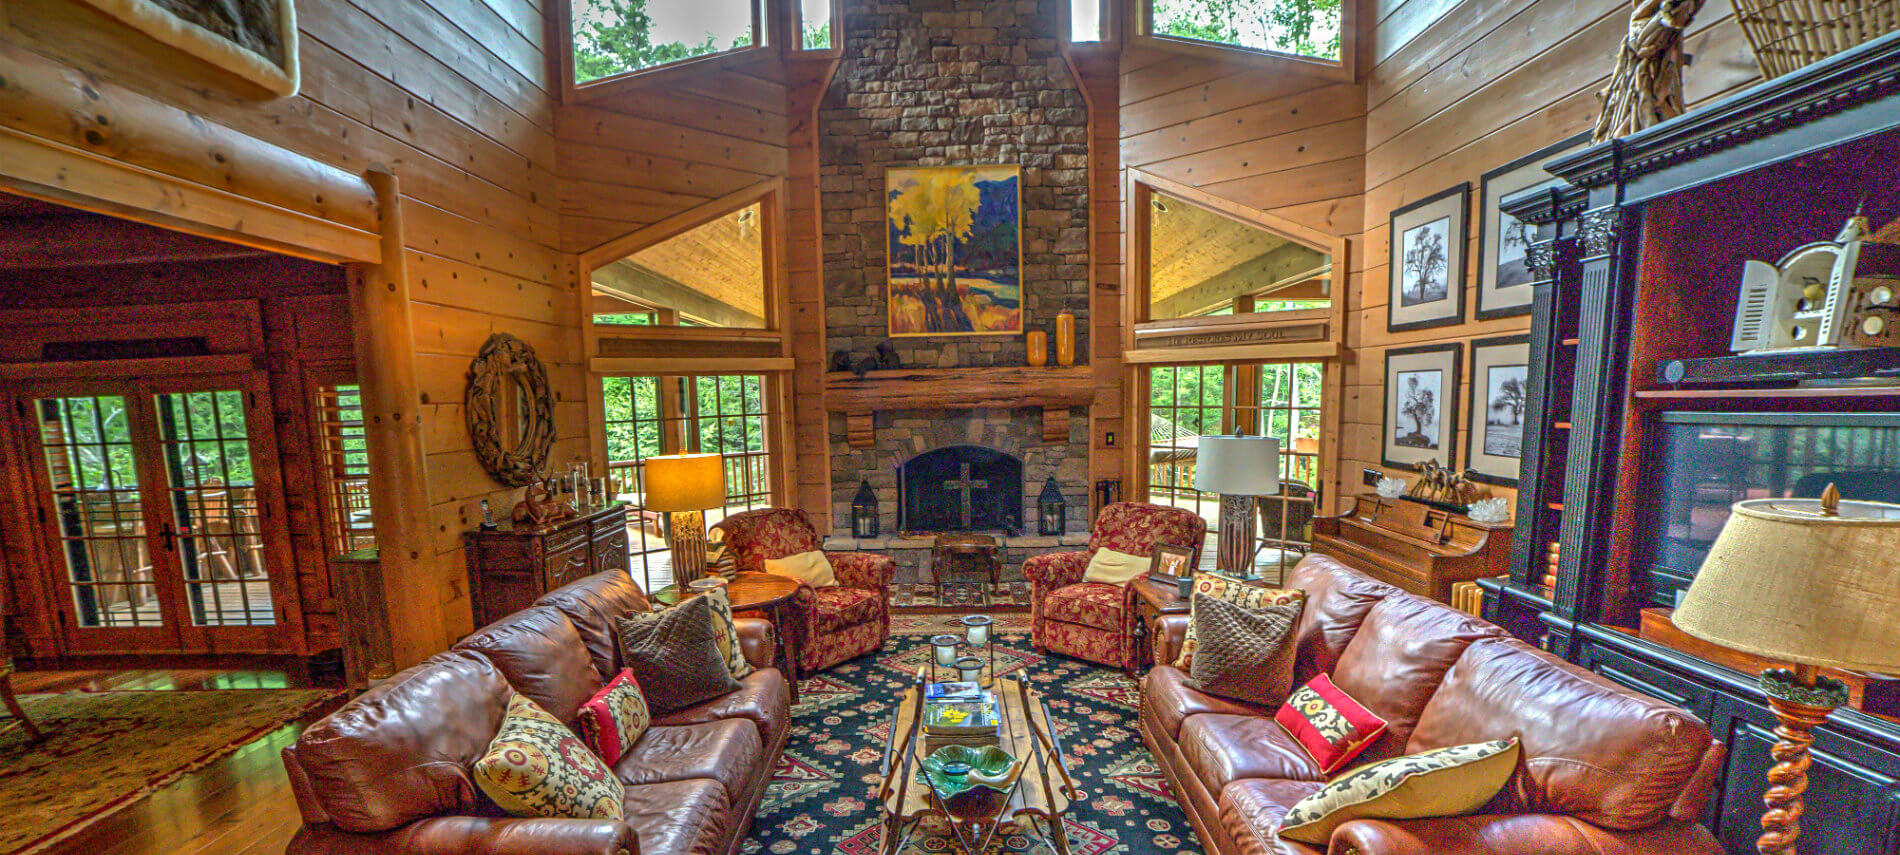 Large family room with 2 leather sofas and 2 fabric recliners. Stone fireplace with large painting over the top of mantel. Piano on the side wall which has black and white pictures of trees. TV is behind one of the sofas. The kitchen is seen from the family room. There are views of the outside from the 2 double doors in family room and 1 in the kitchen